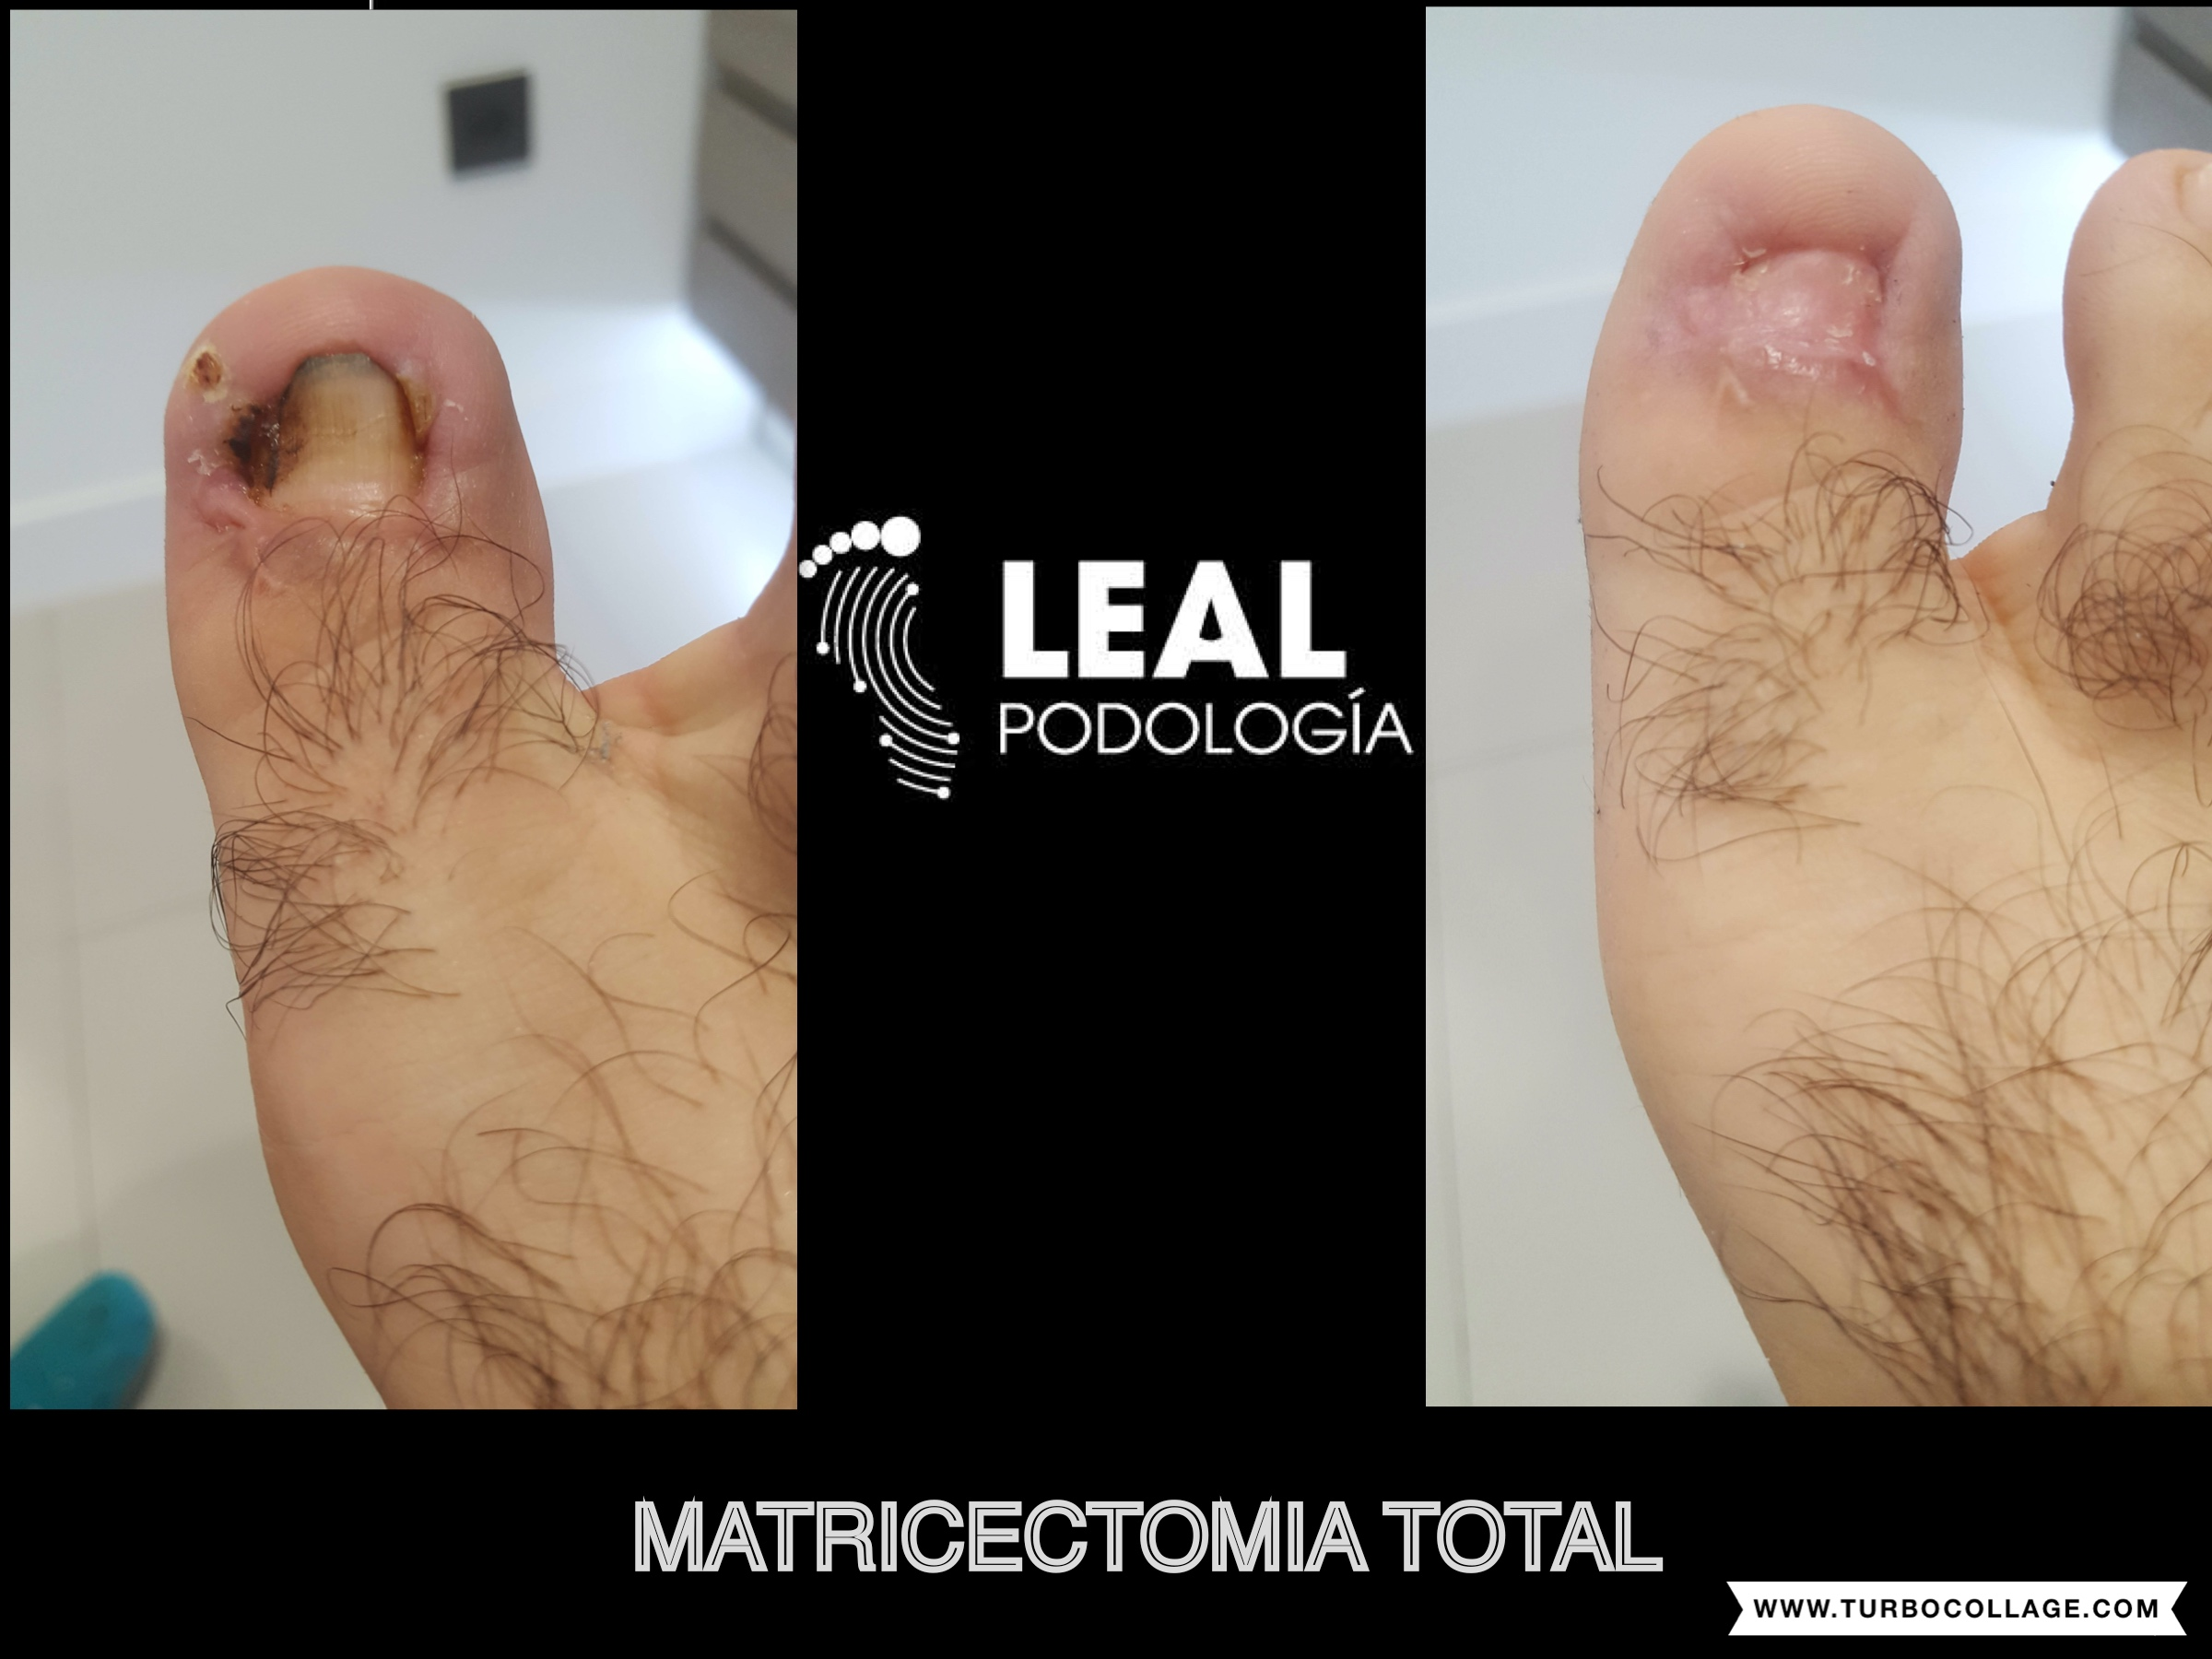 Matricectomia total